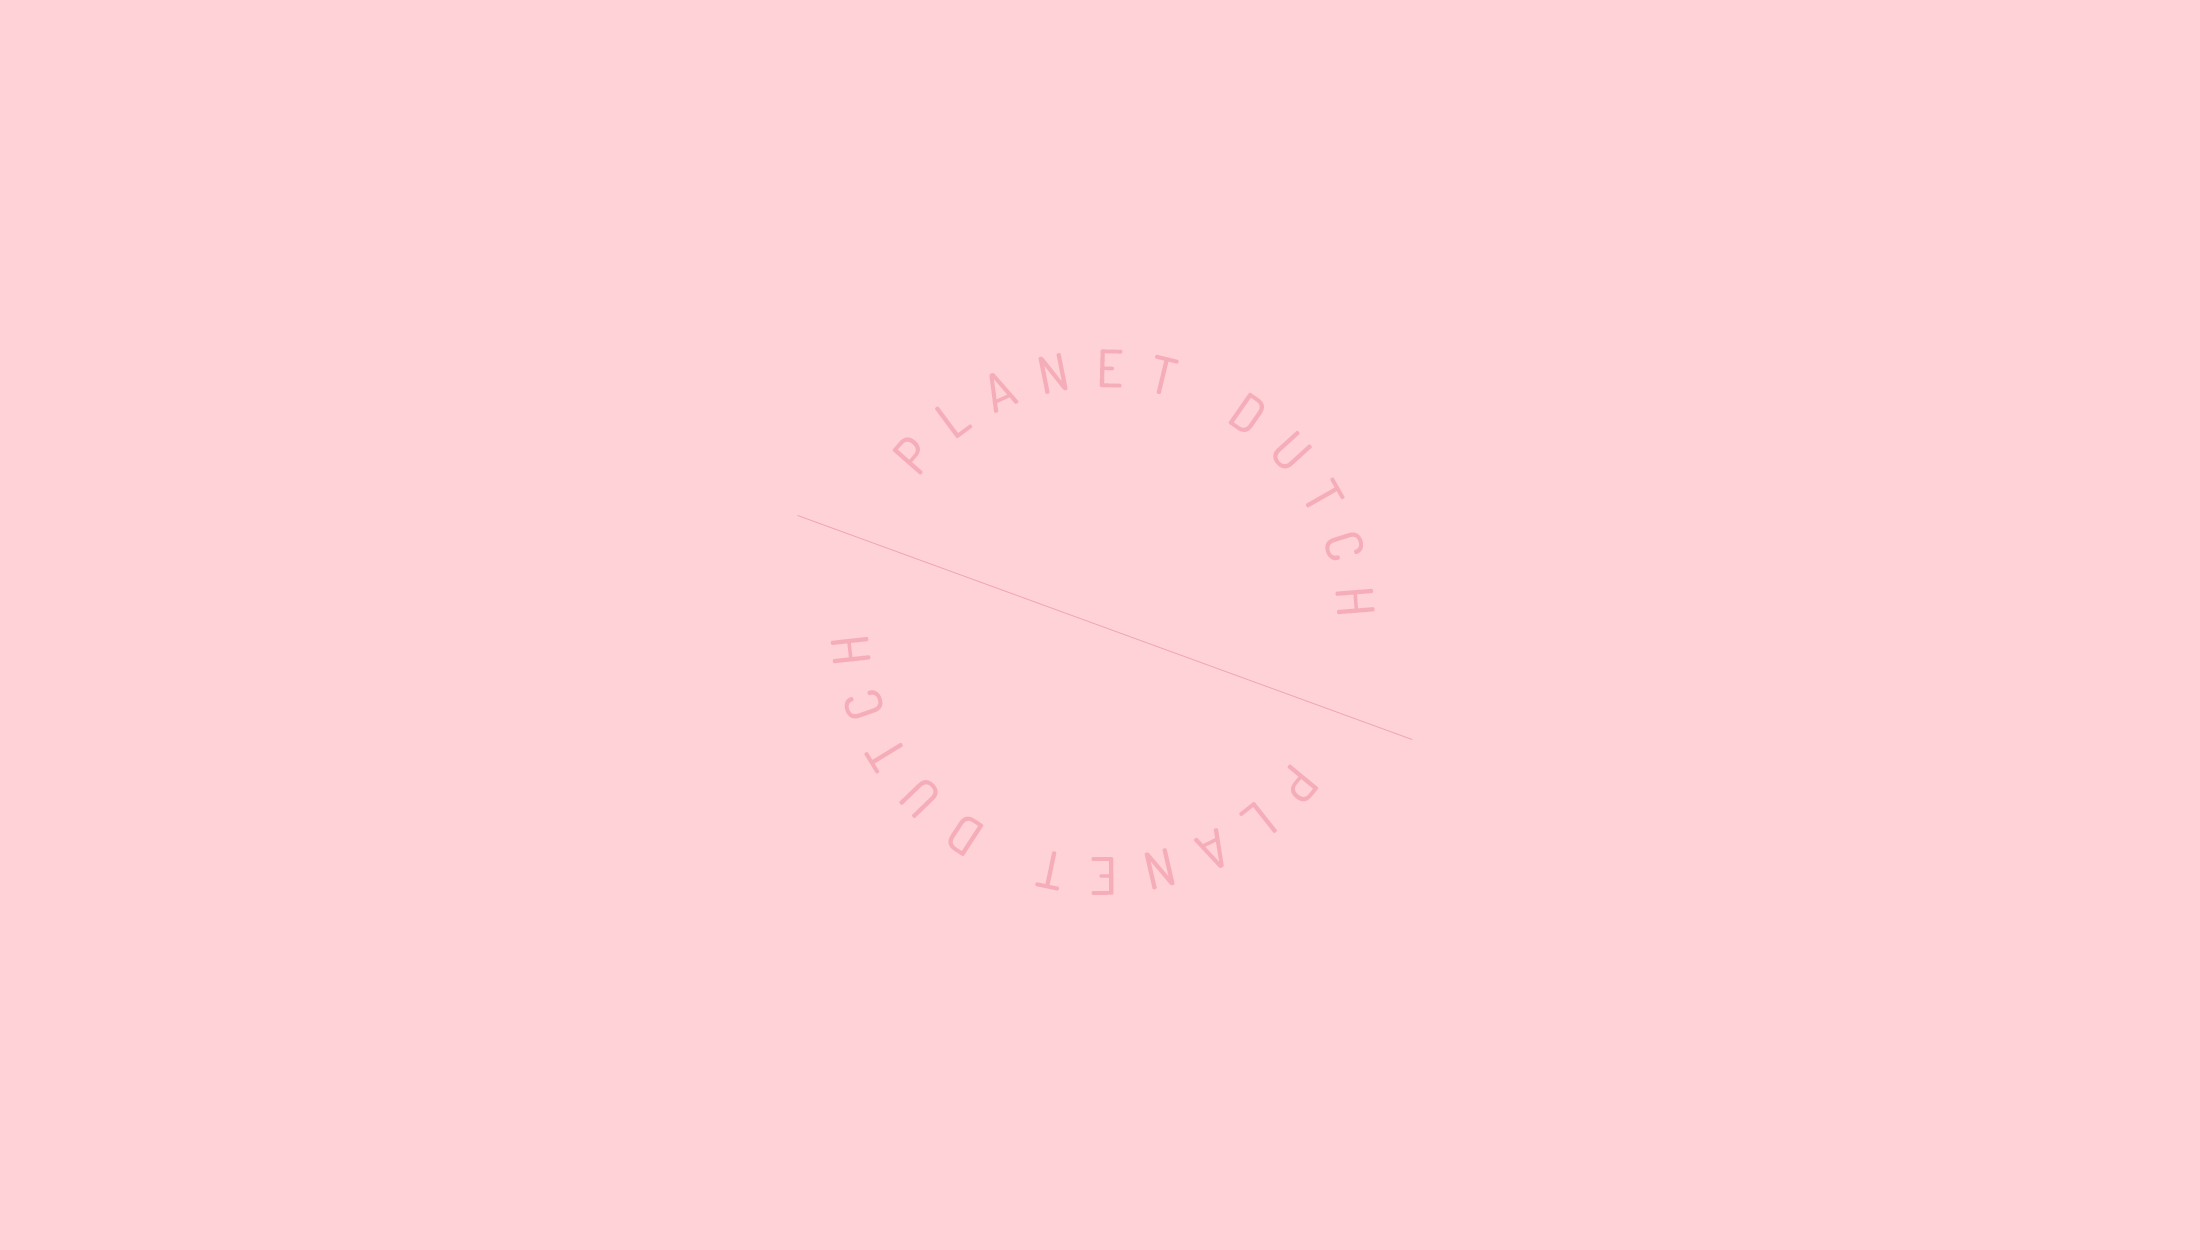 Final logo mark design for Planet Dutch, a community for expatriate women on how to survive in the Netherlands by learning their language & culture - designed by Wiltshire-based graphic designer, Kaye Huett